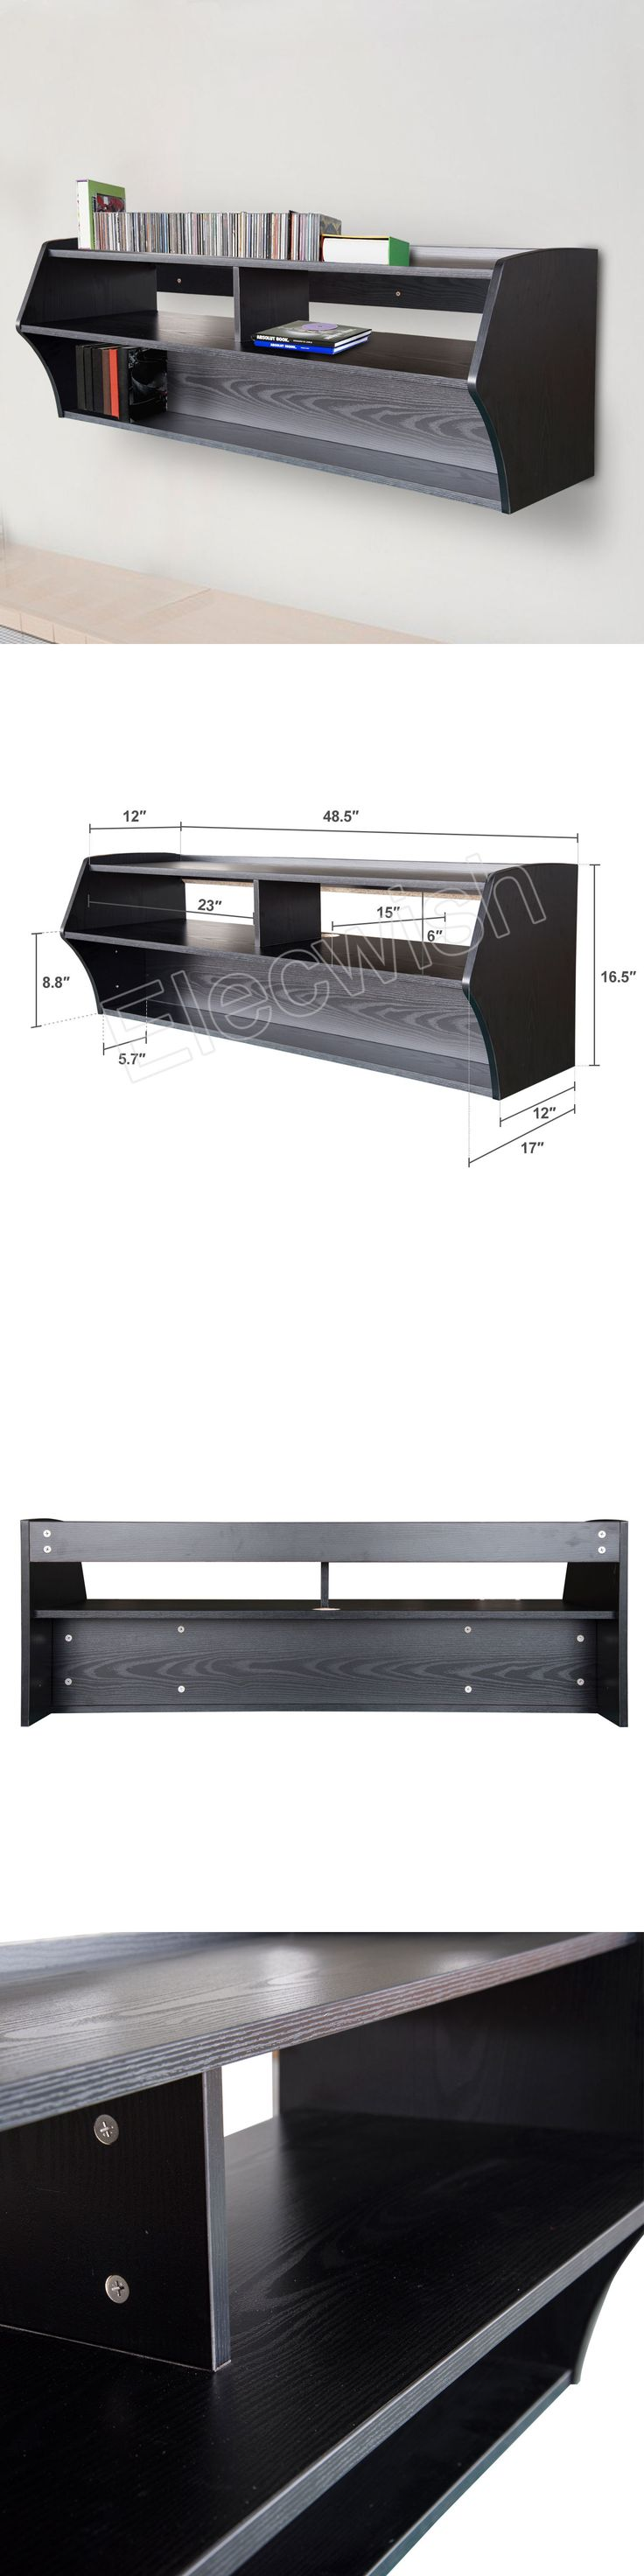 Entertainment Units TV Stands: Wall Mount Tv Stand Floating Shelf Media Console Entertainment Center Cd Black -> BUY IT NOW ONLY: $78.99 on eBay!